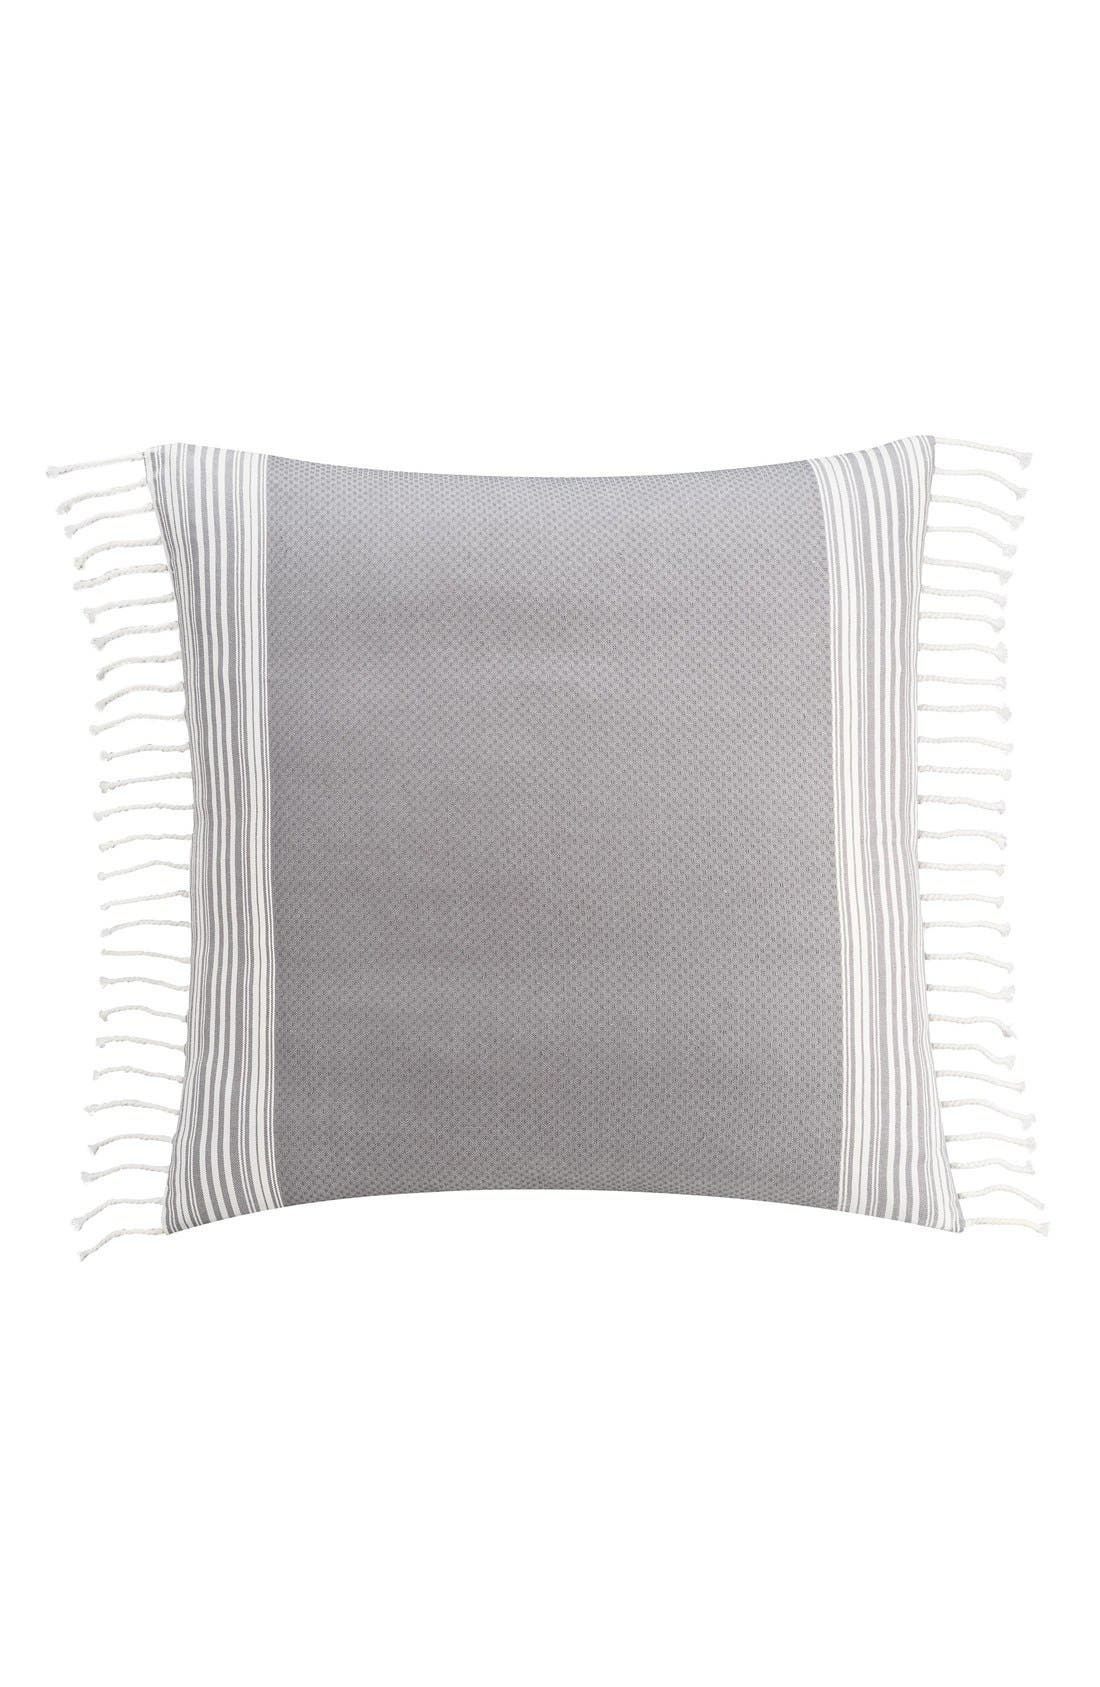 Alternate Image 1 Selected - cupcakes and cashmere 'Moroccan Geo' Euro Sham